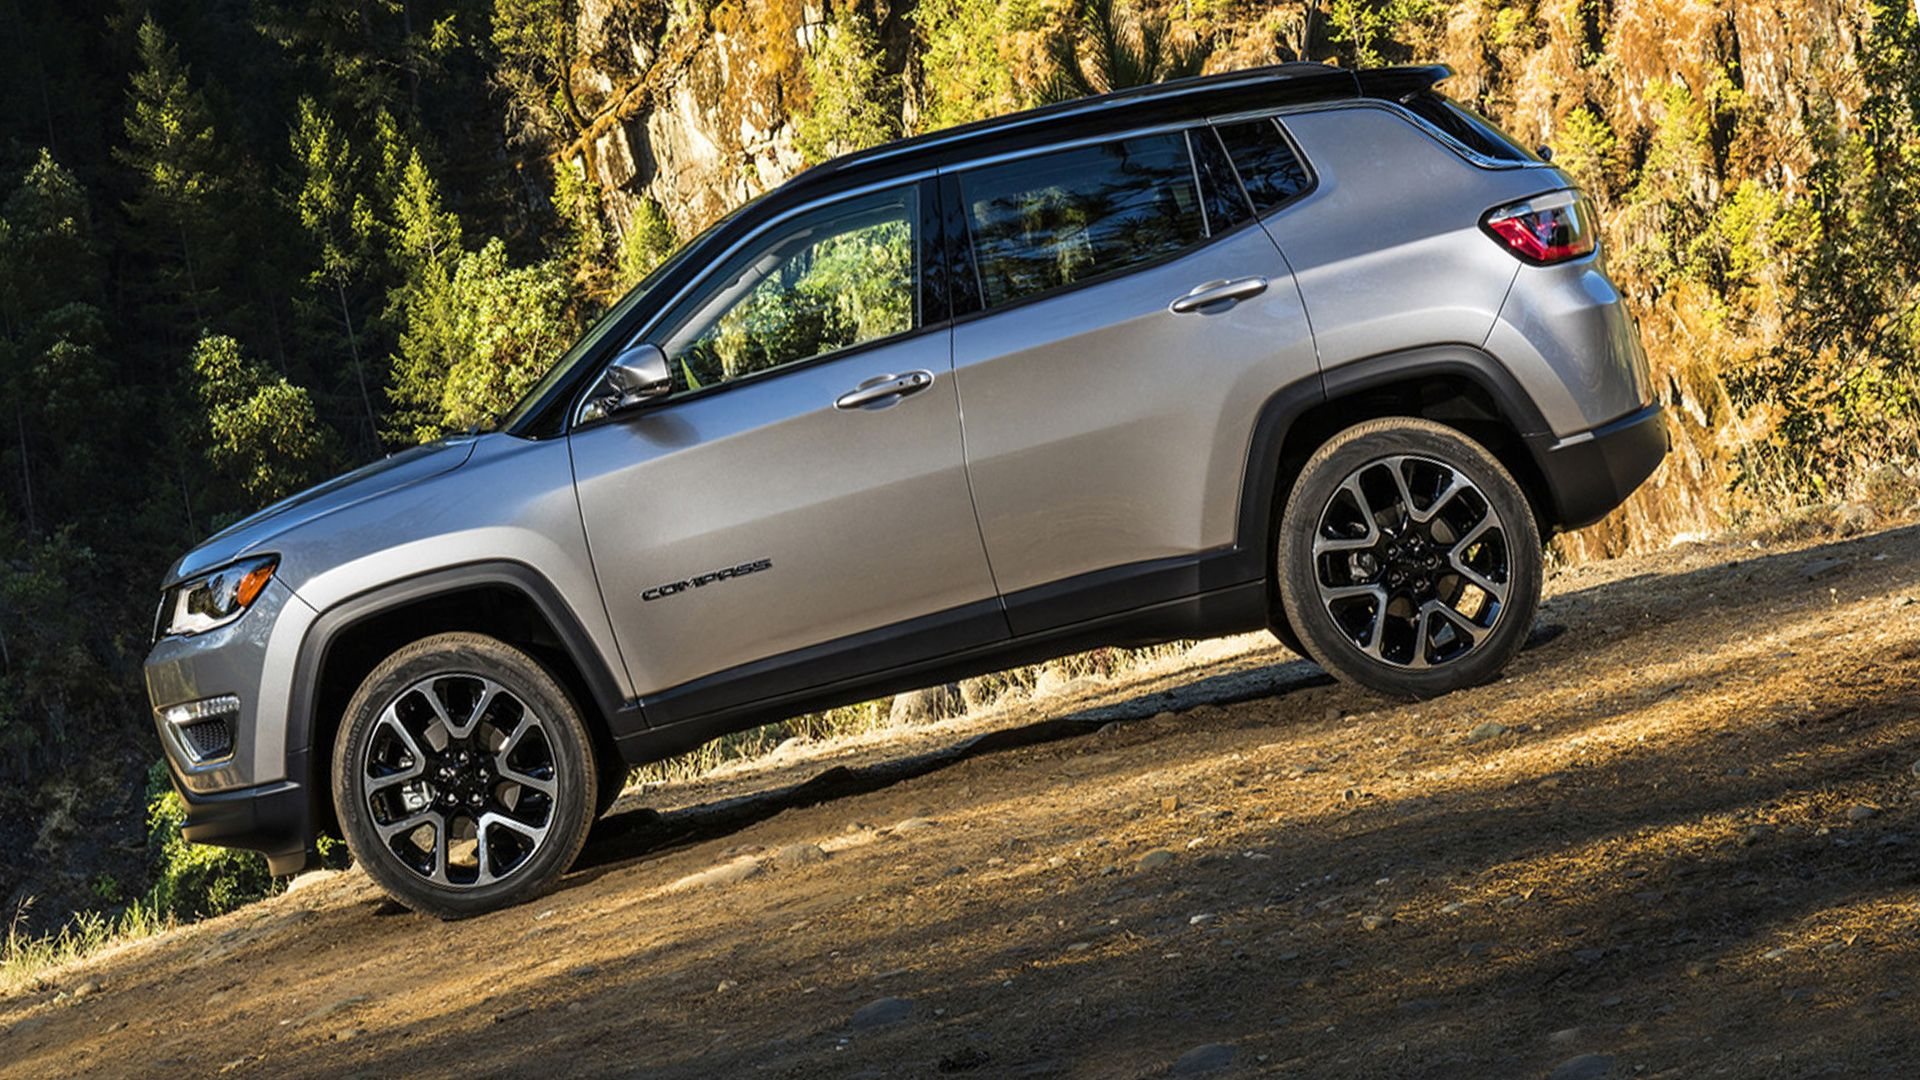 2019 Jeep Compass Exterior Changes Jeep Compass Reviews Jeep